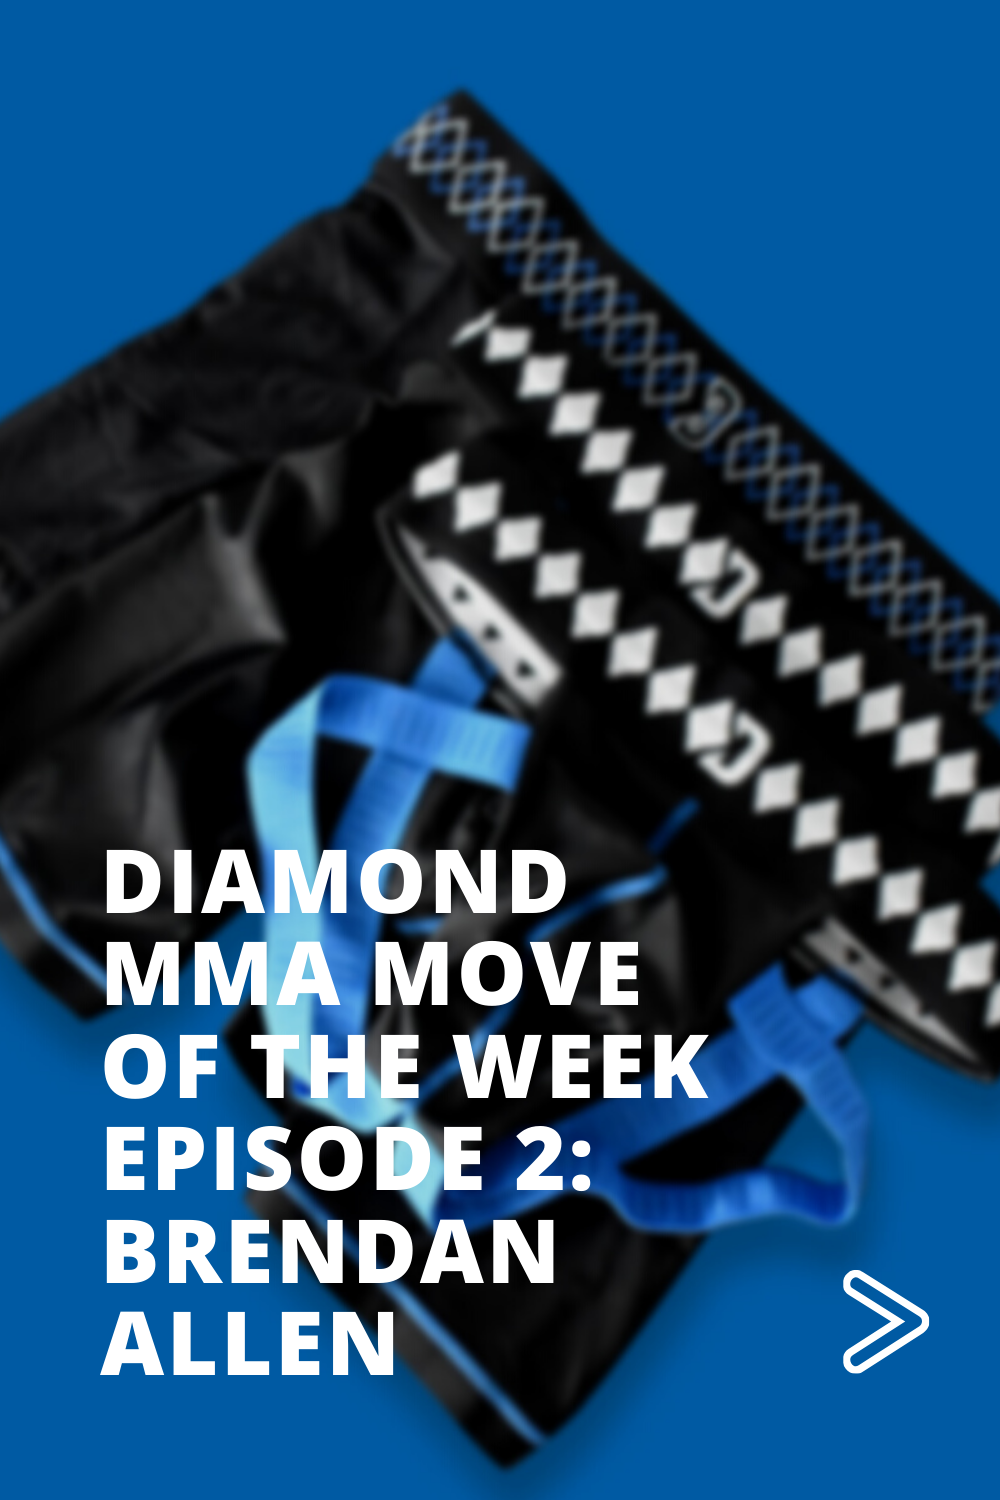 Diamond Move of The Week - Episode 2 - Brendan Allen